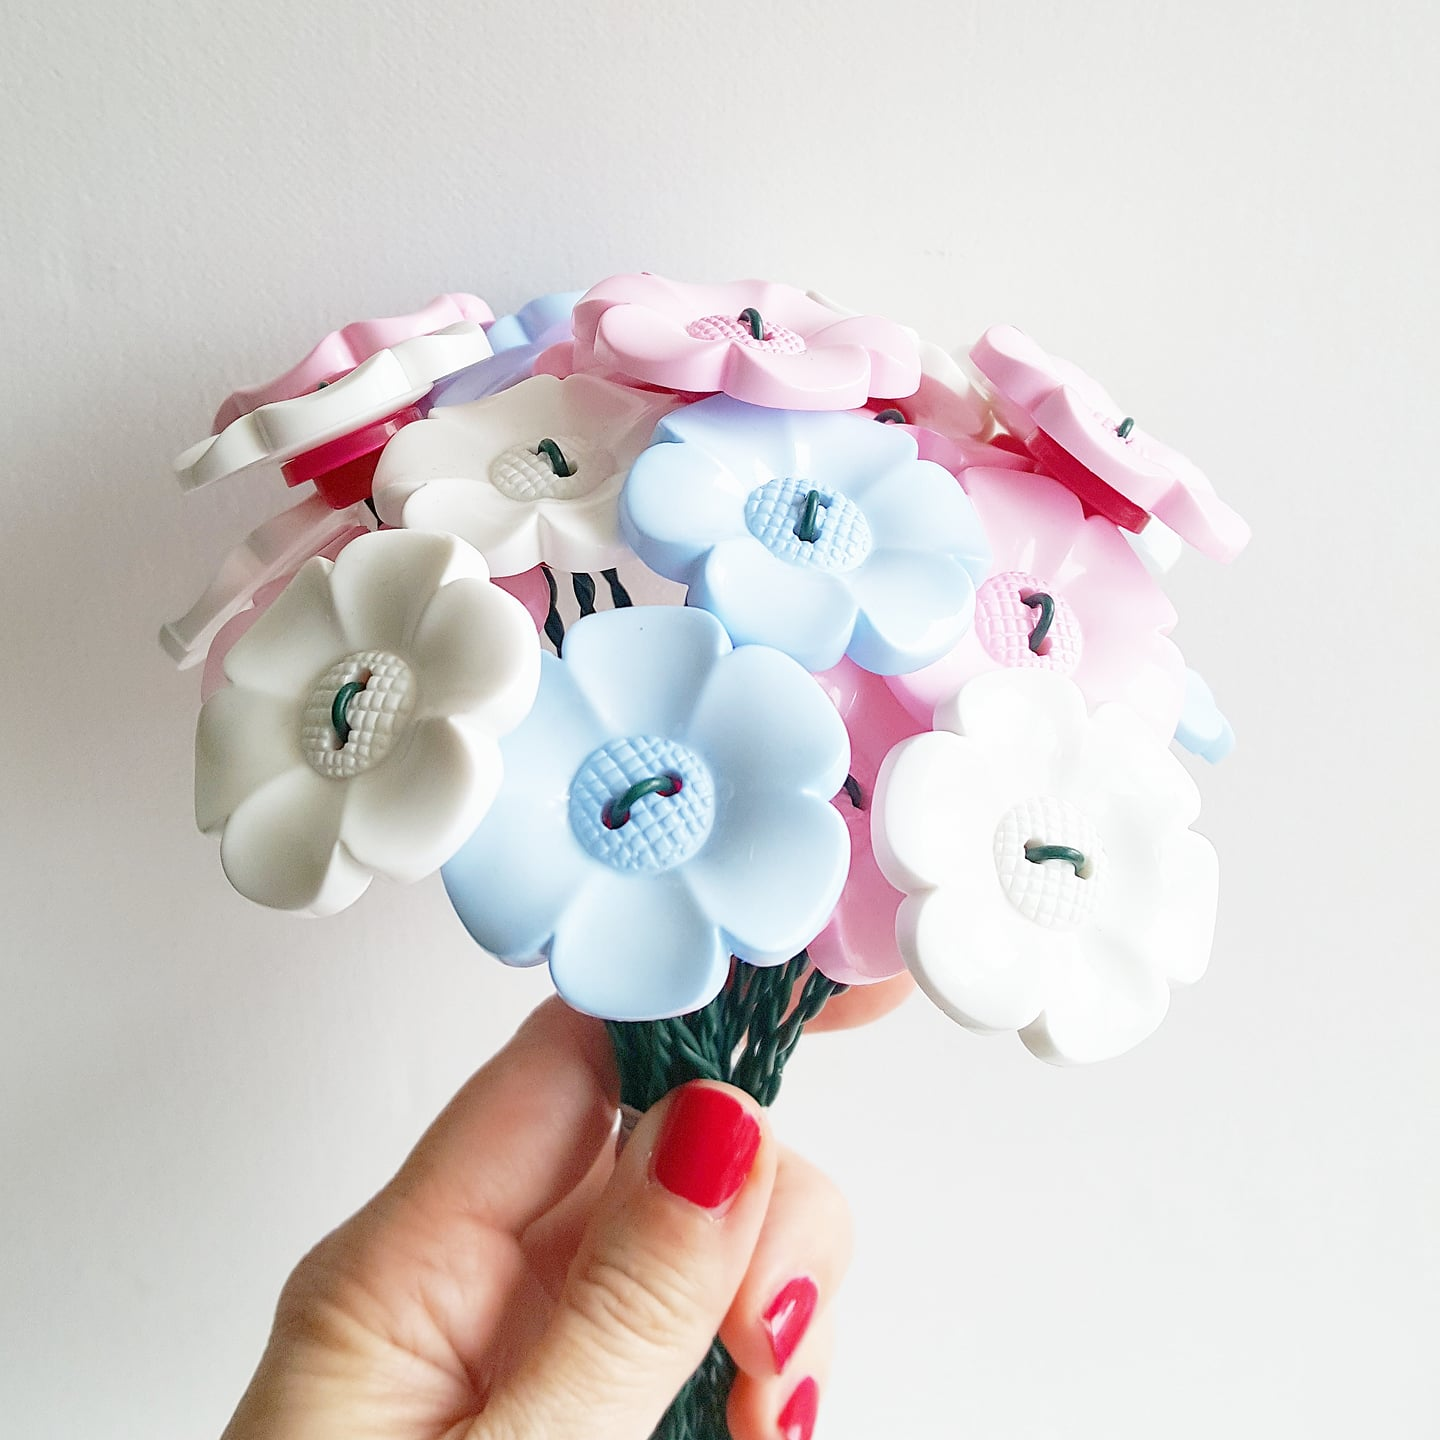 plastic flowers made of buttons